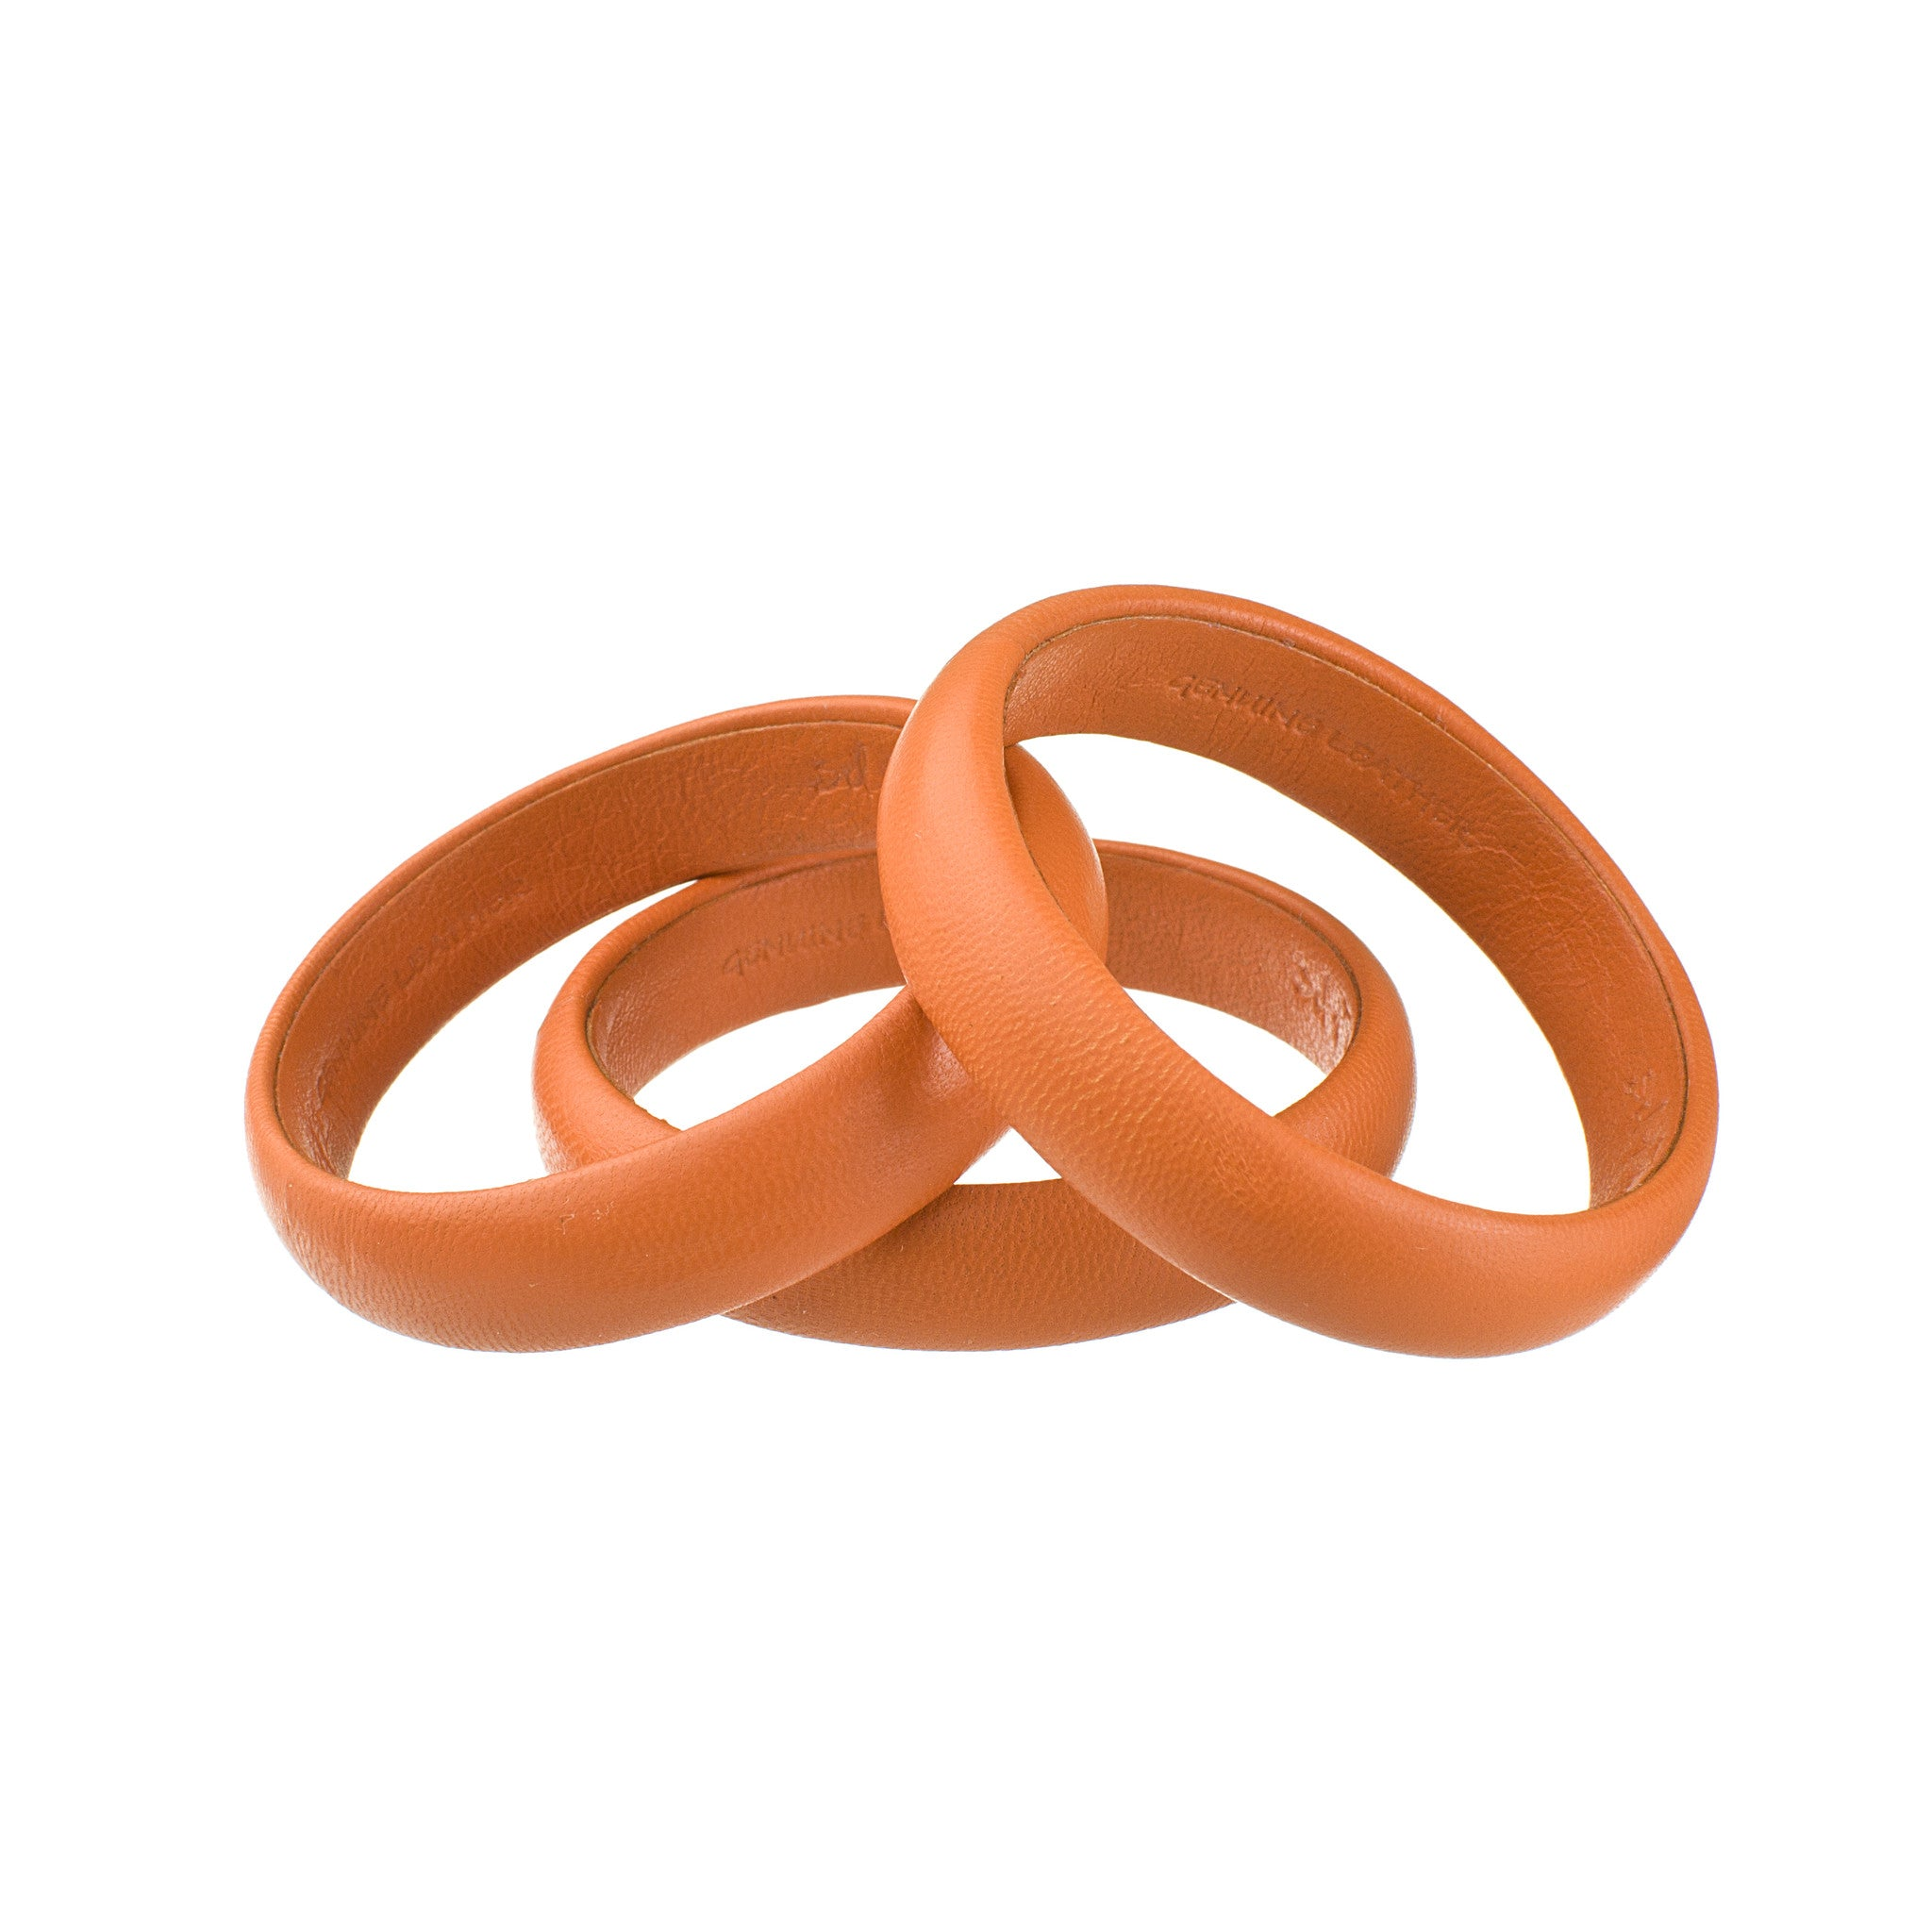 Vintage Orange Petite Leather Bangle Bracelet sd1Twenty5 stack